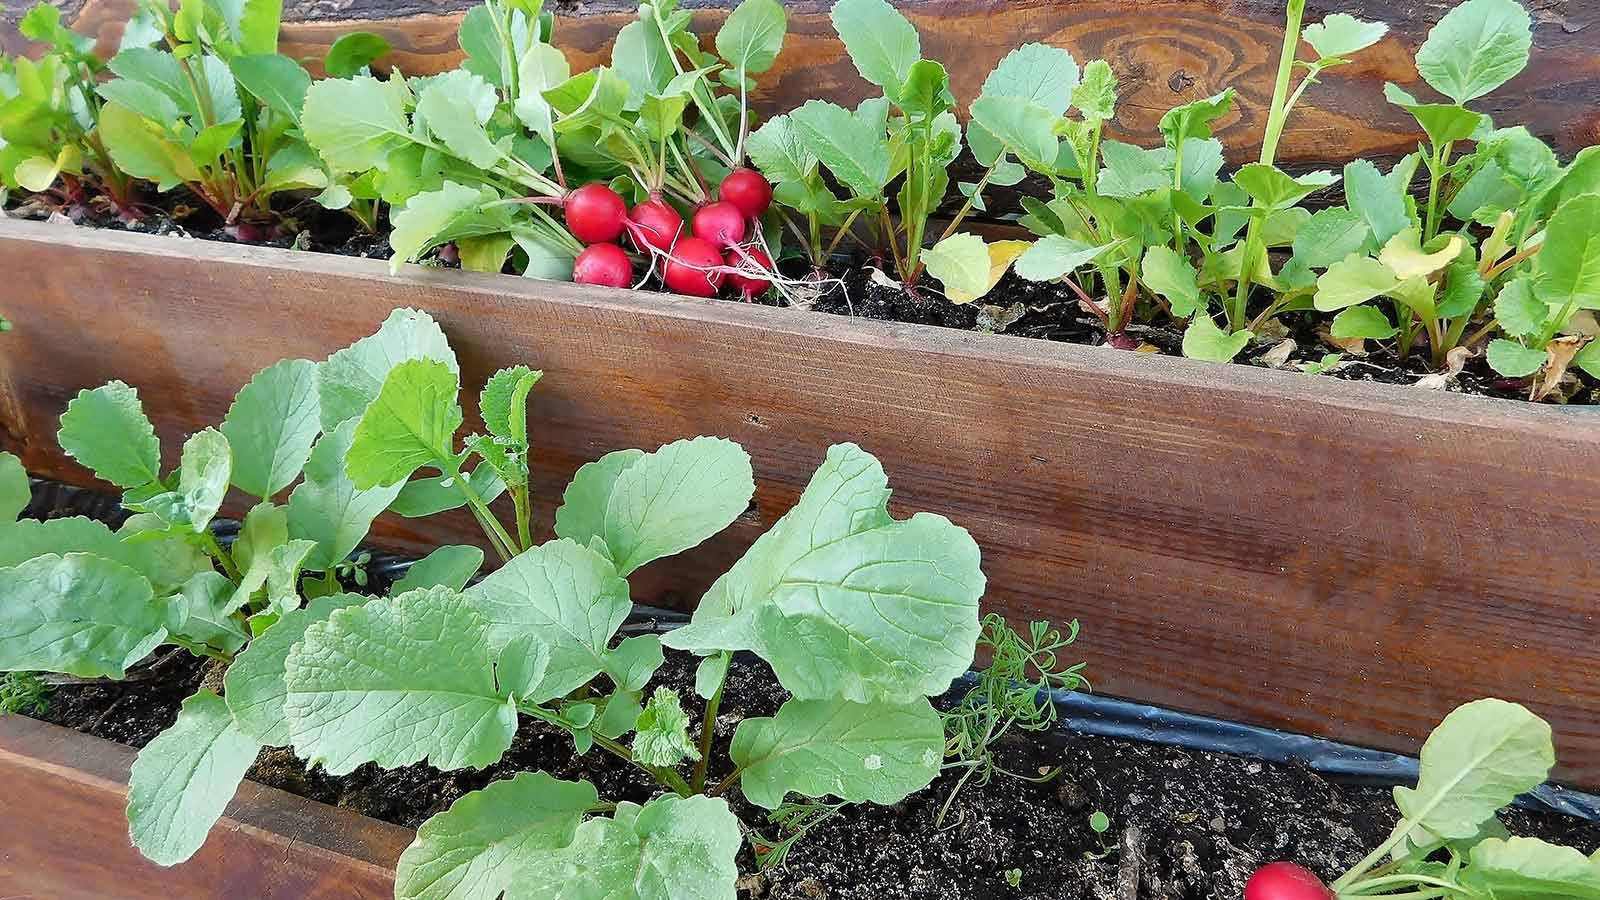 Radishes growing a wooden container.